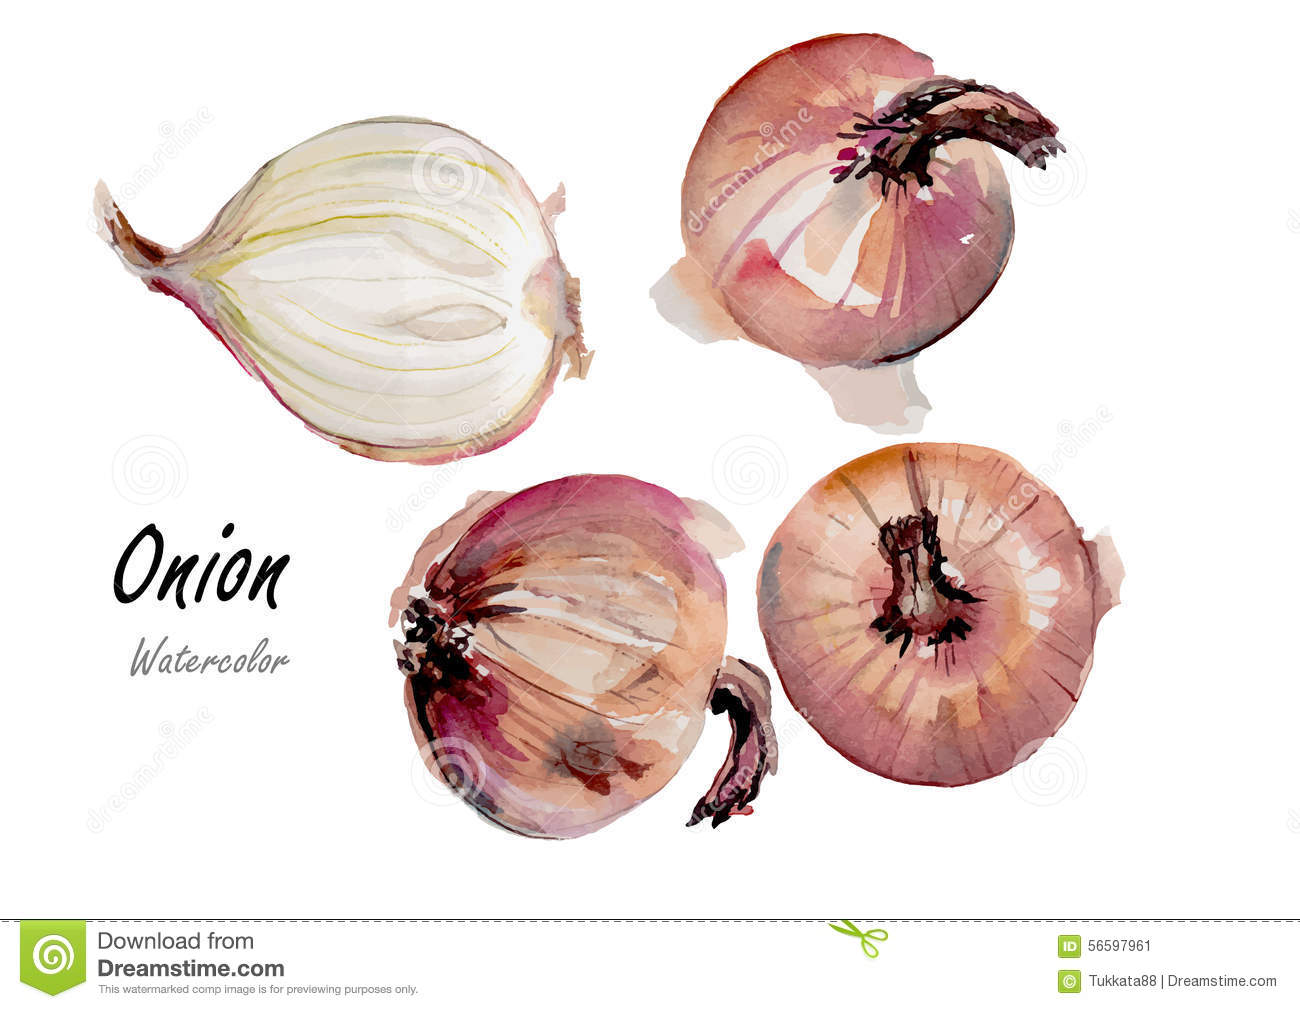 how to grow an onion from another onion white